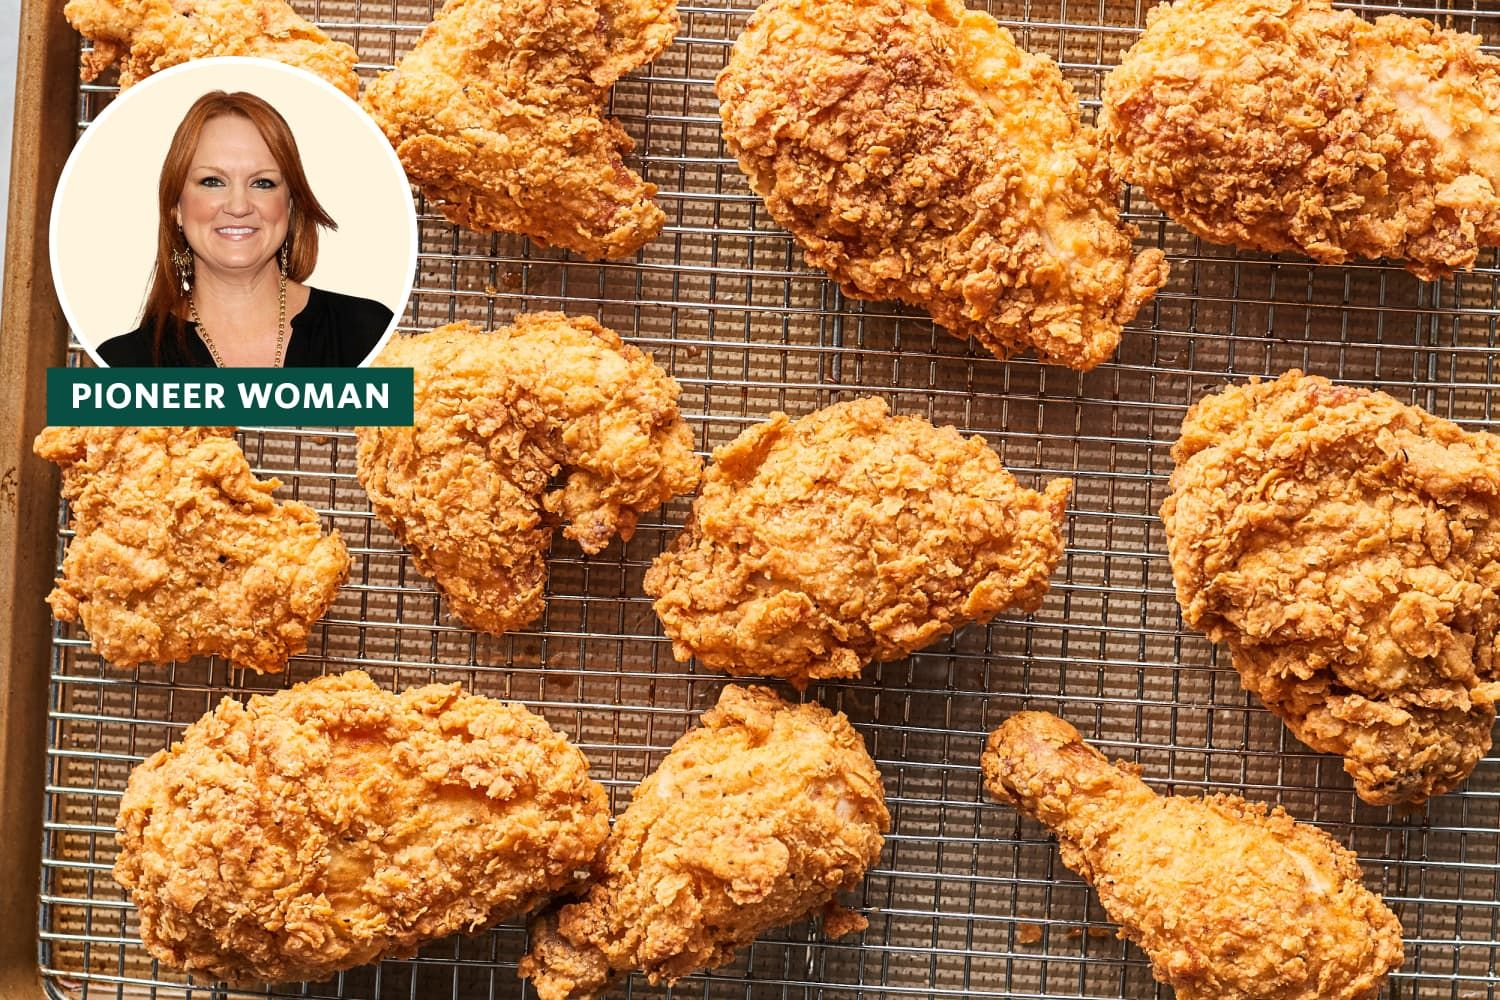 The Pioneer Woman S No Fuss Fried Chicken Is Perfect For Beginners In 2020 Making Fried Chicken Fried Chicken Recipe Pioneer Woman Fried Chicken